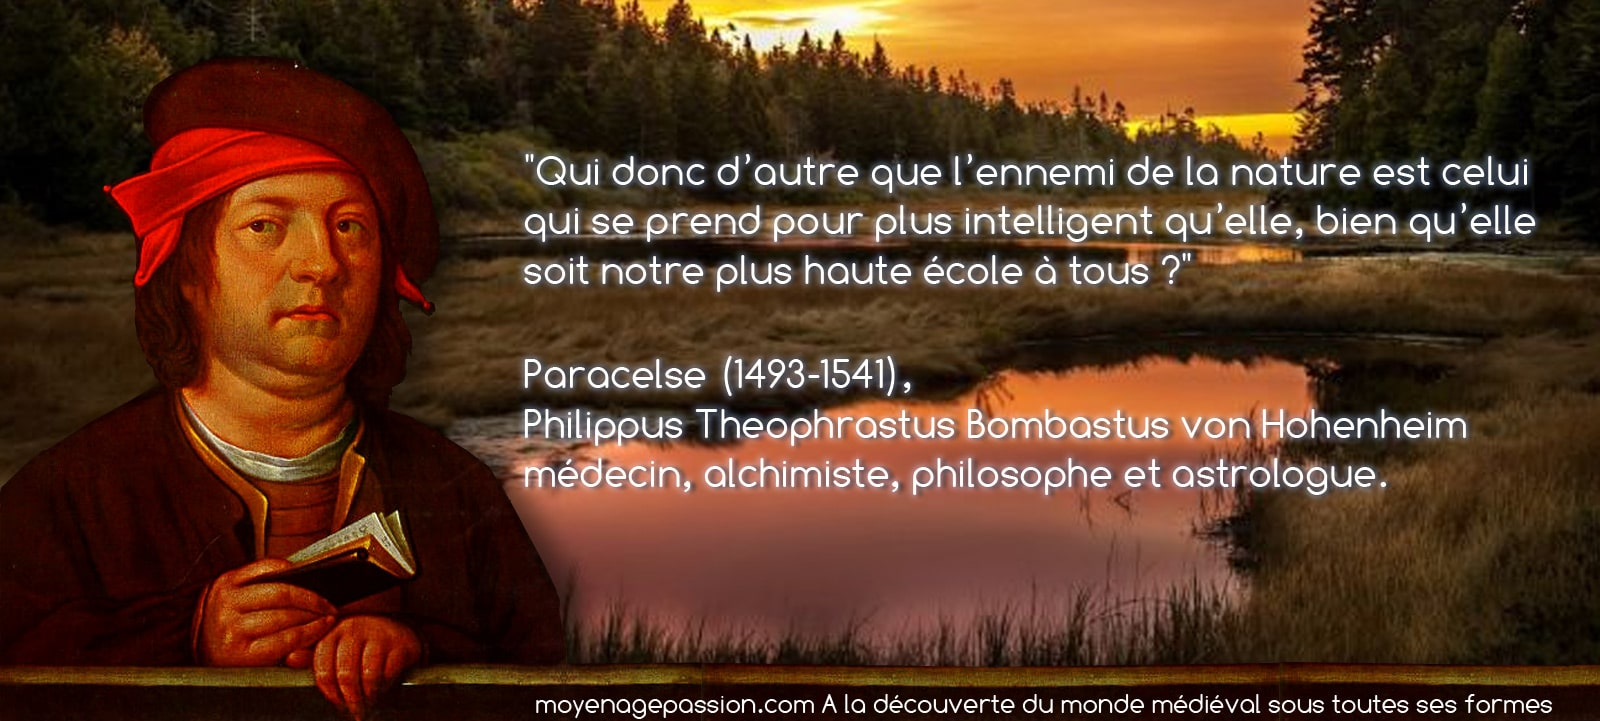 citation_sagesse_medievale_paracelse_nature_medecin_philosophe_astrologue_moyen-age